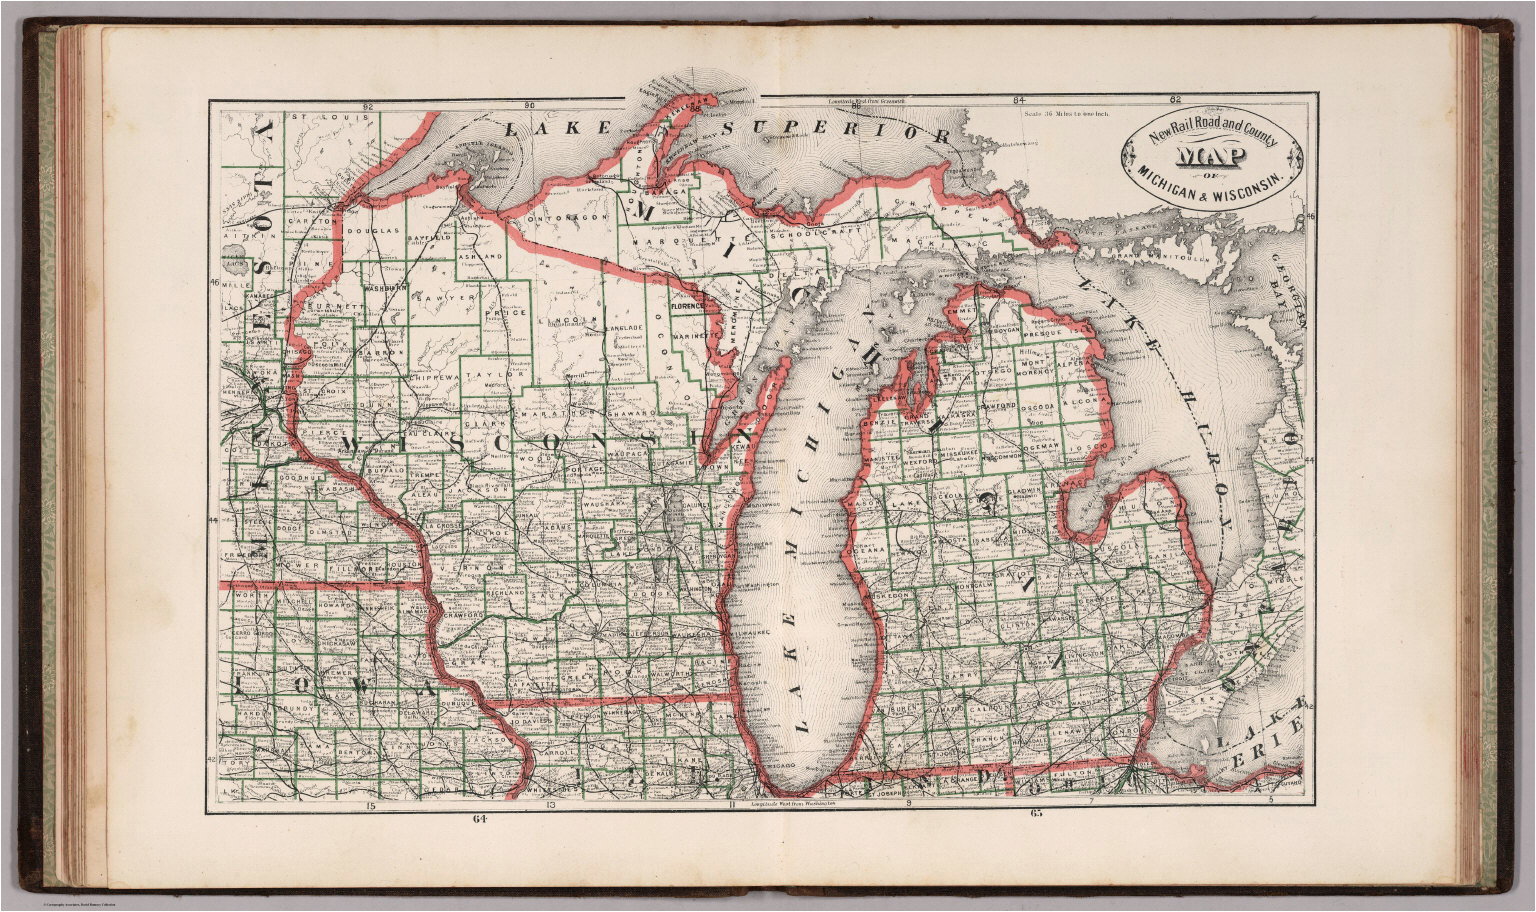 new rail road and county map of michigan and wisconsin david